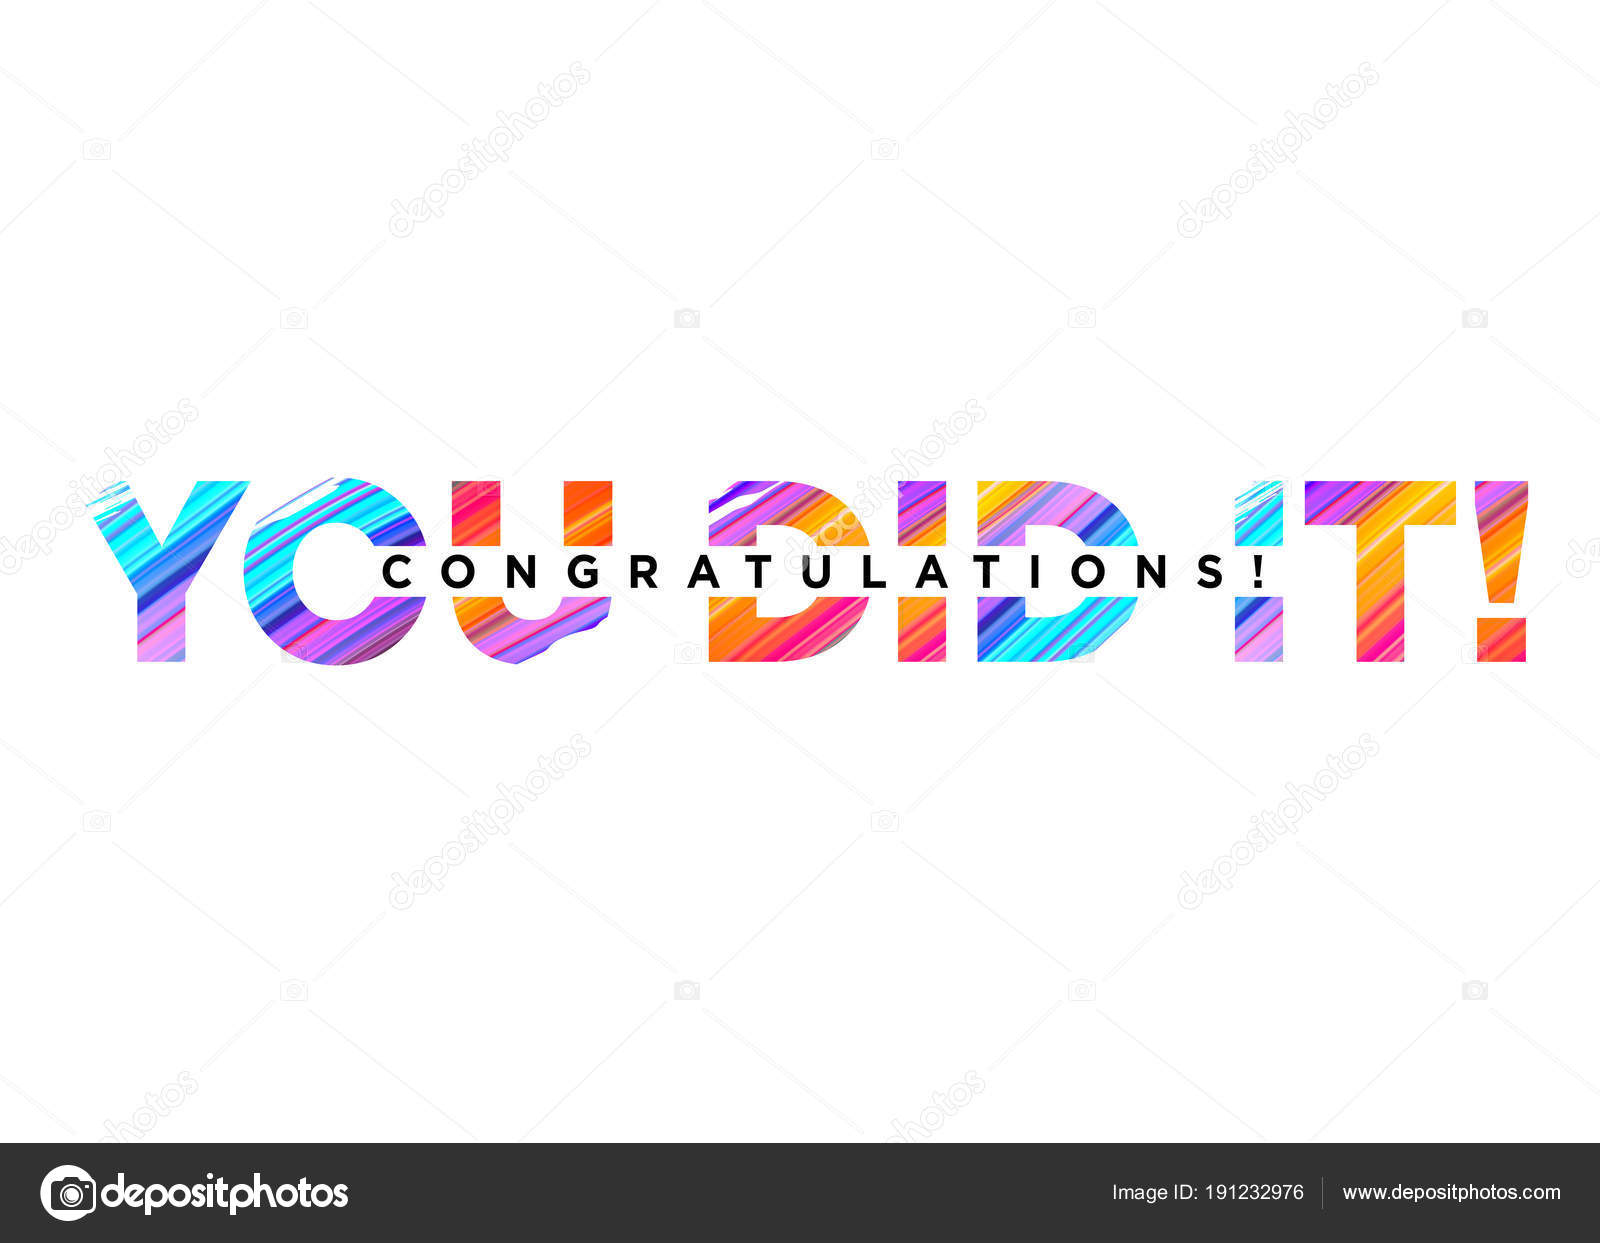 congratulations you did it inscription with bright colorful brush